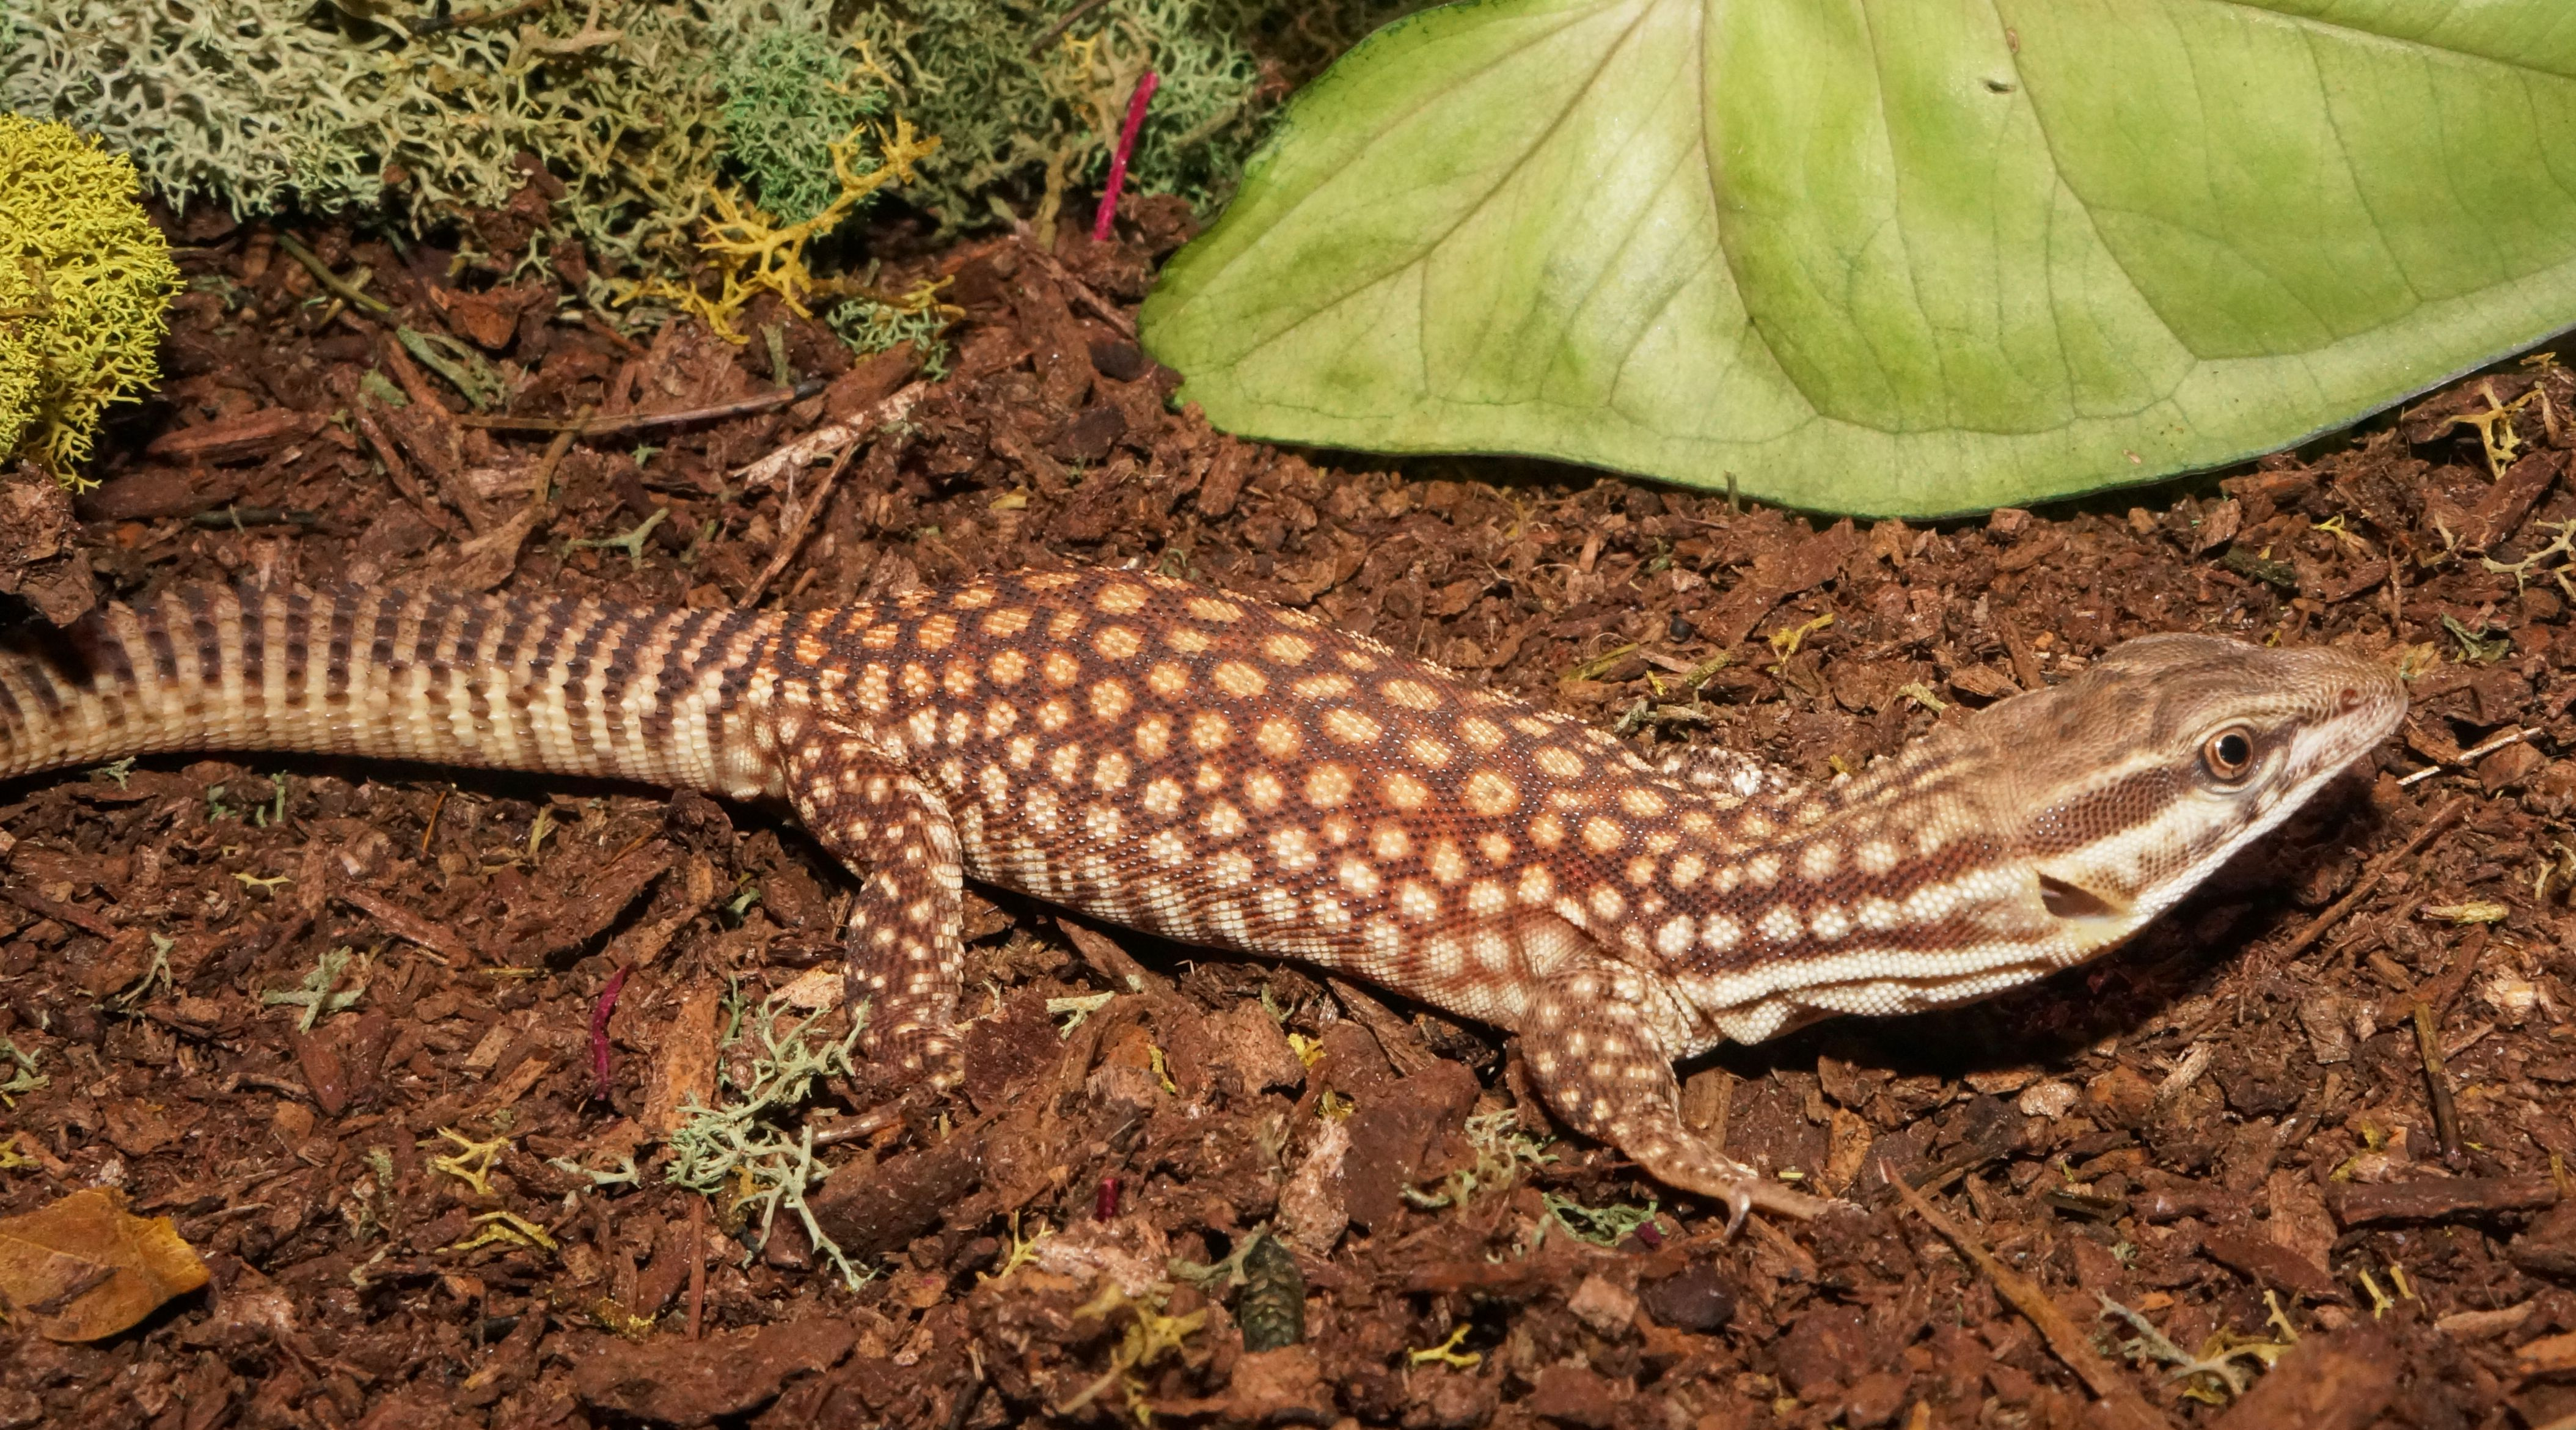 Baby Red Ackie Monitor | Lizards: Monitors & Tegus